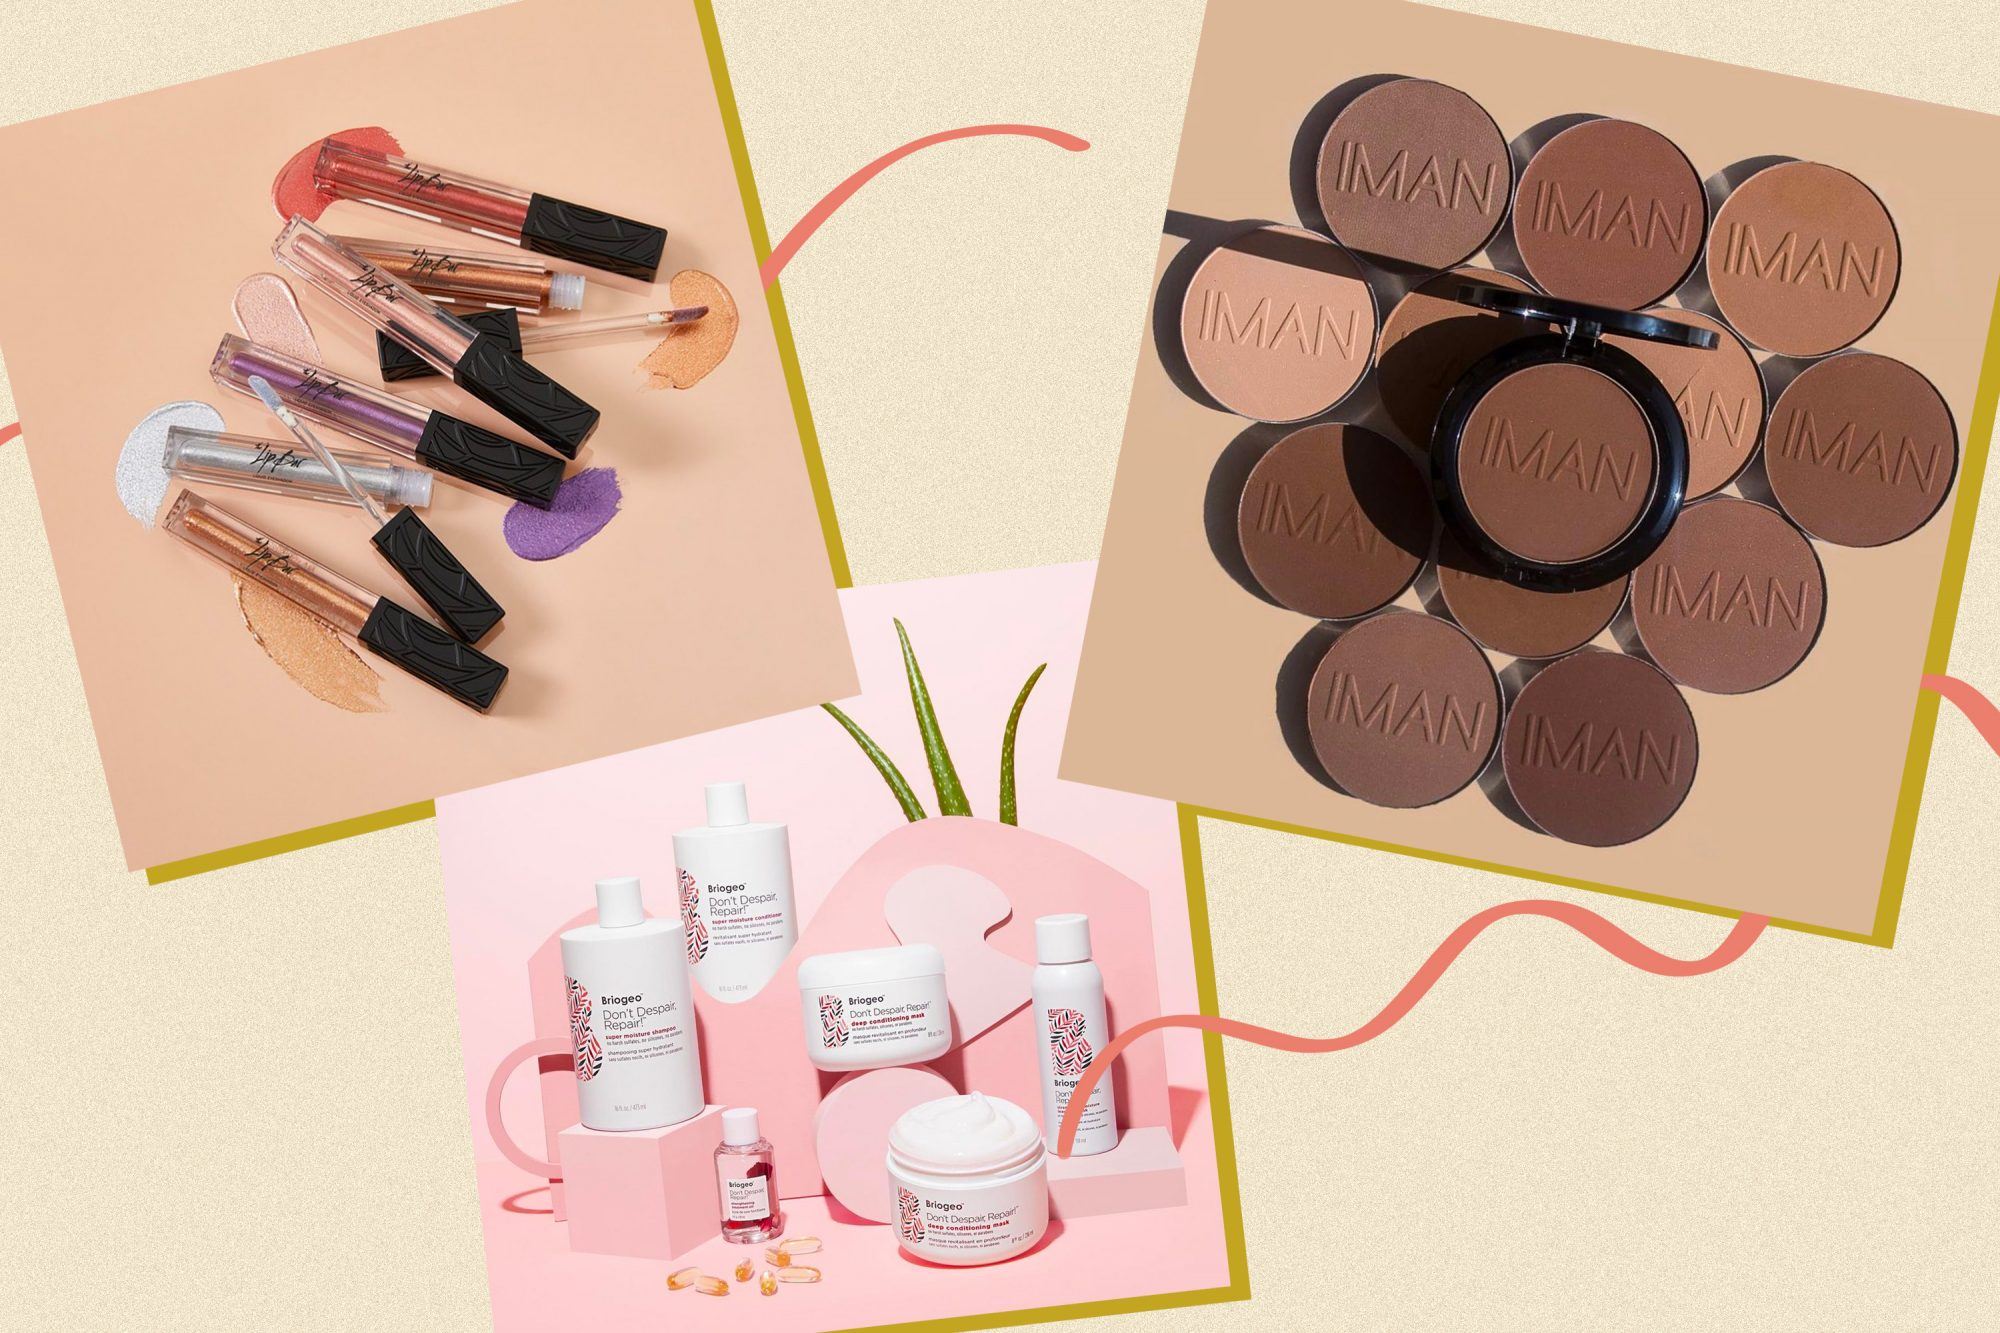 10 Black-Owned Beauty Brands You Can Shop on Amazon, Including Michelle Obama's Go-To Lipstick